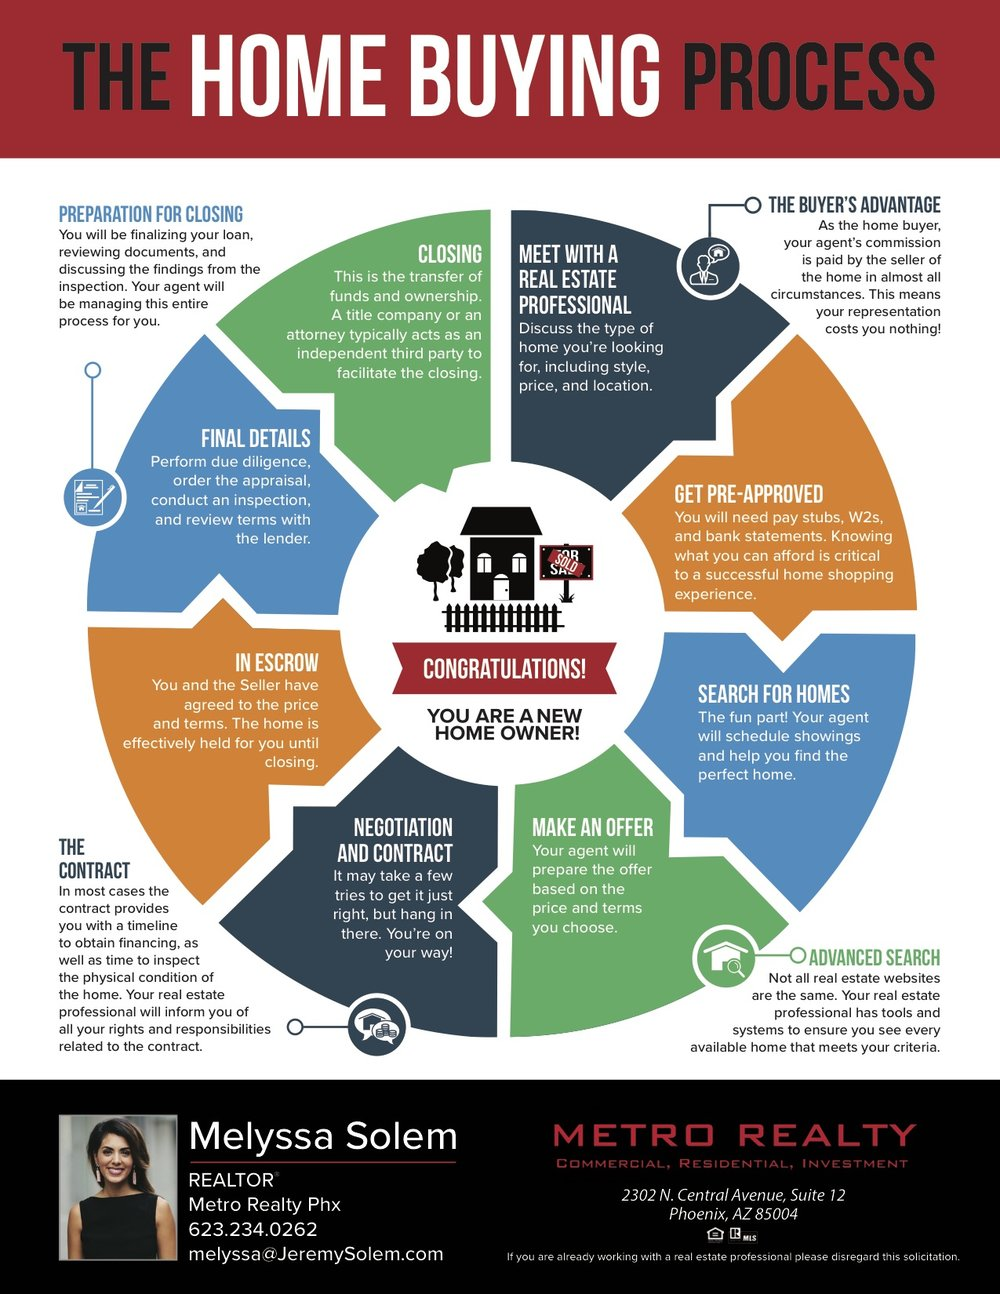 Road Map Flyer - Home Buying - Melyssa Solem.jpg